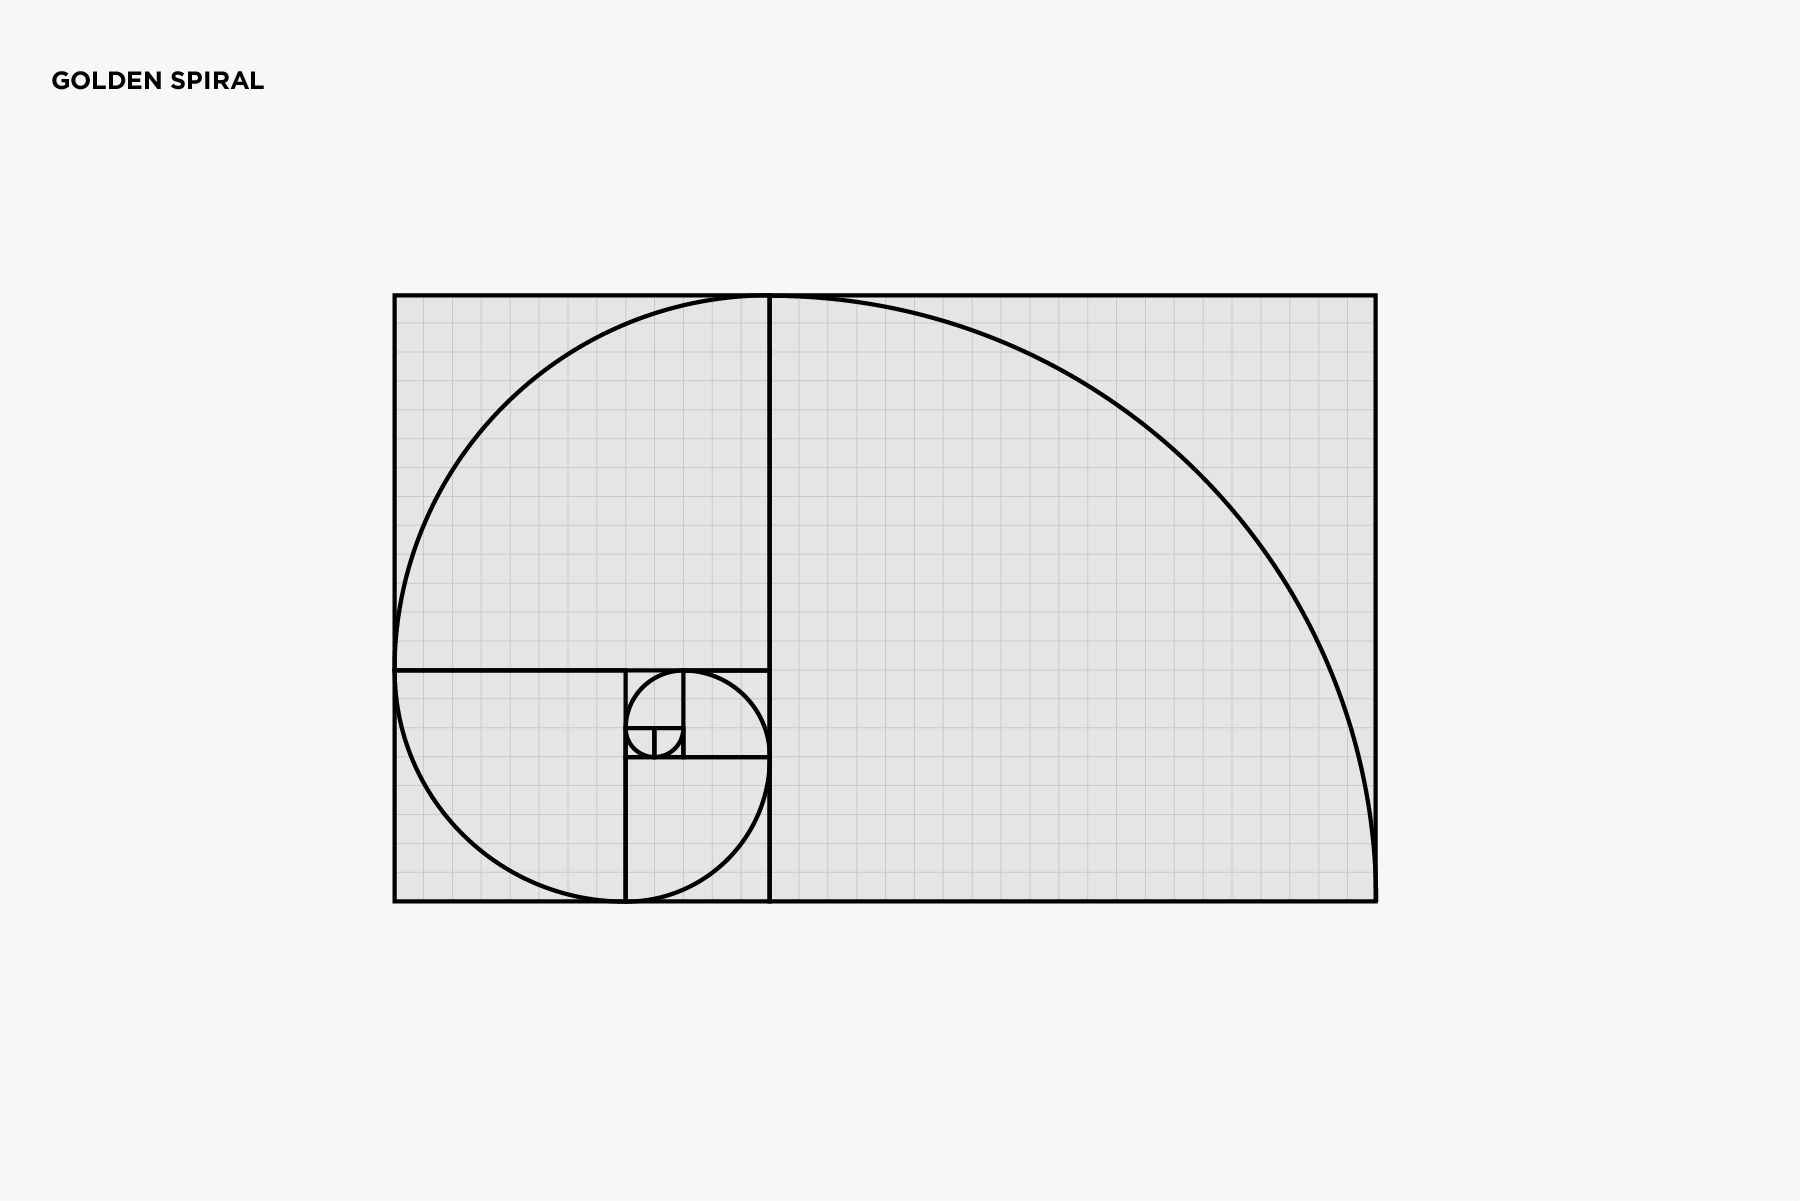 Using the Golden Ratio in Logo Design